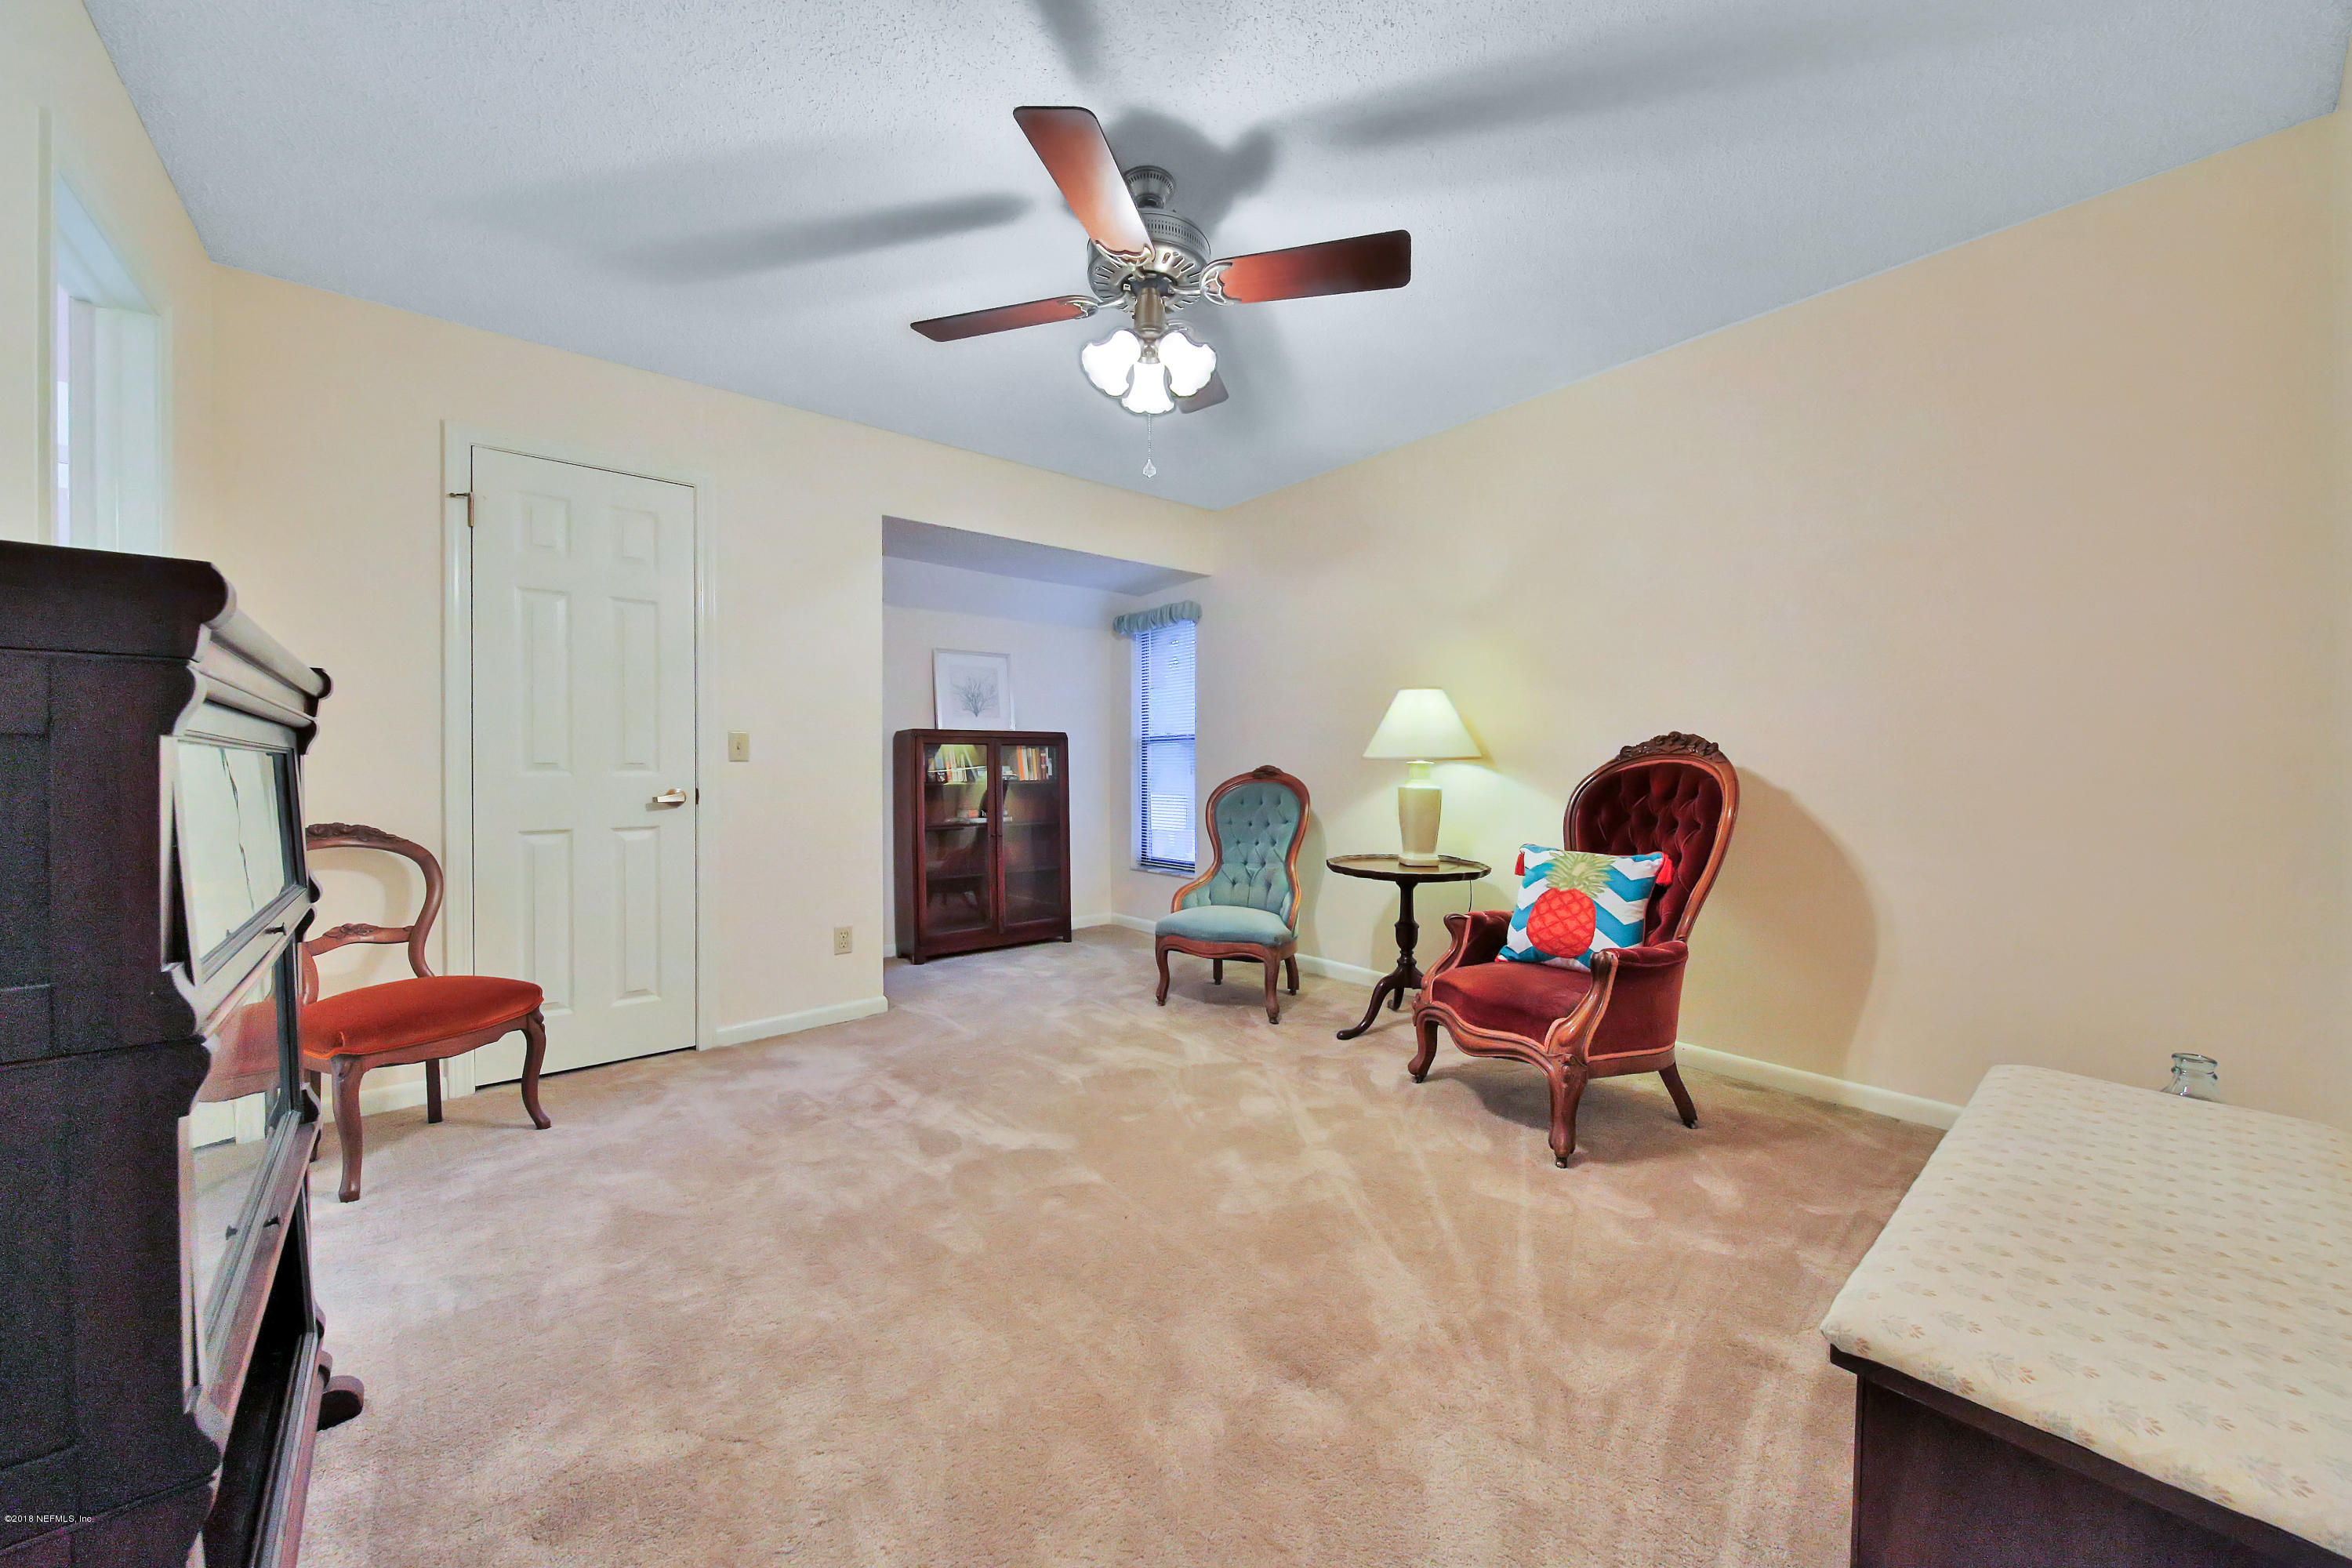 11308 BEACON, JACKSONVILLE, FLORIDA 32225, 4 Bedrooms Bedrooms, ,4 BathroomsBathrooms,Residential - single family,For sale,BEACON,947341